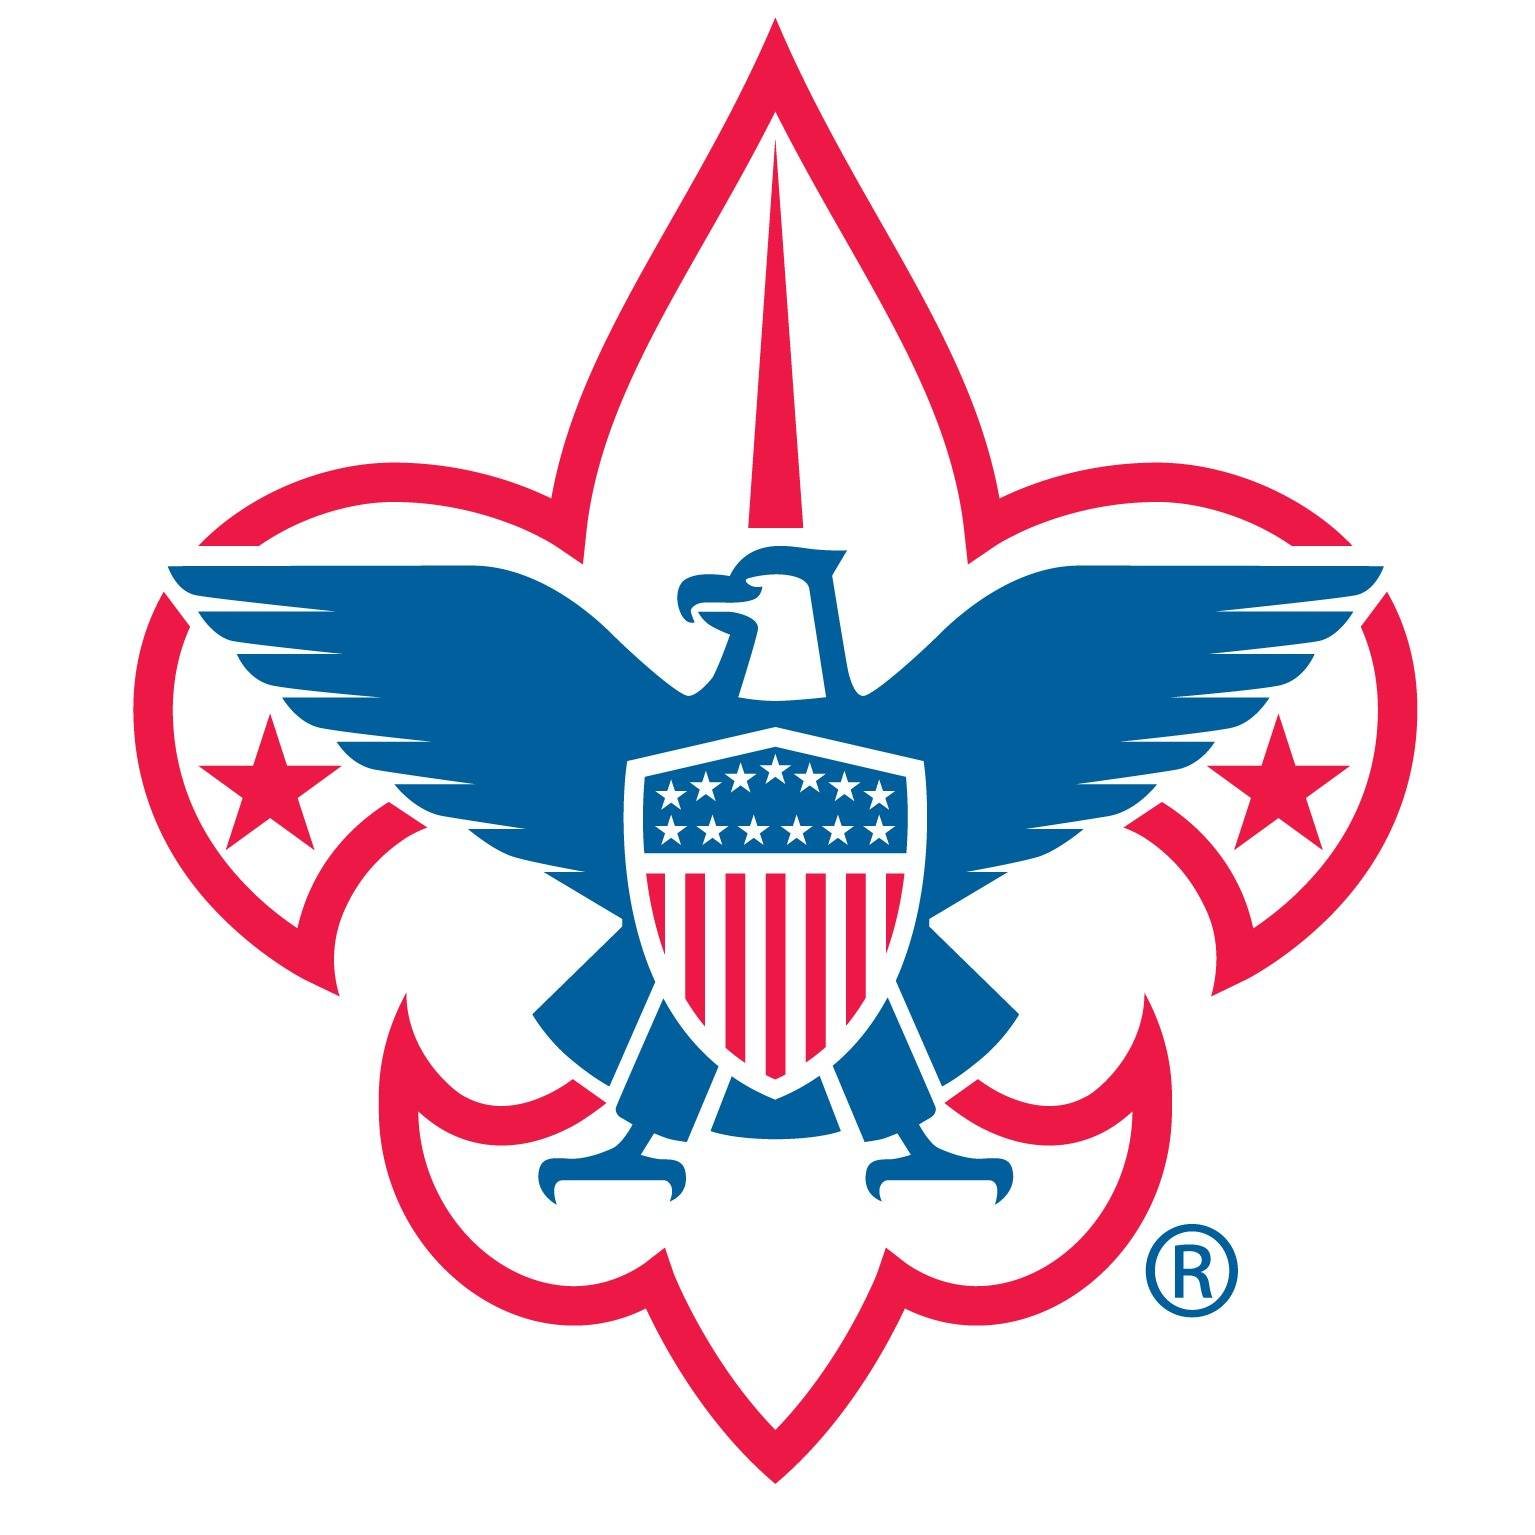 Logo of Greater New York Councils, Boy Scouts of America